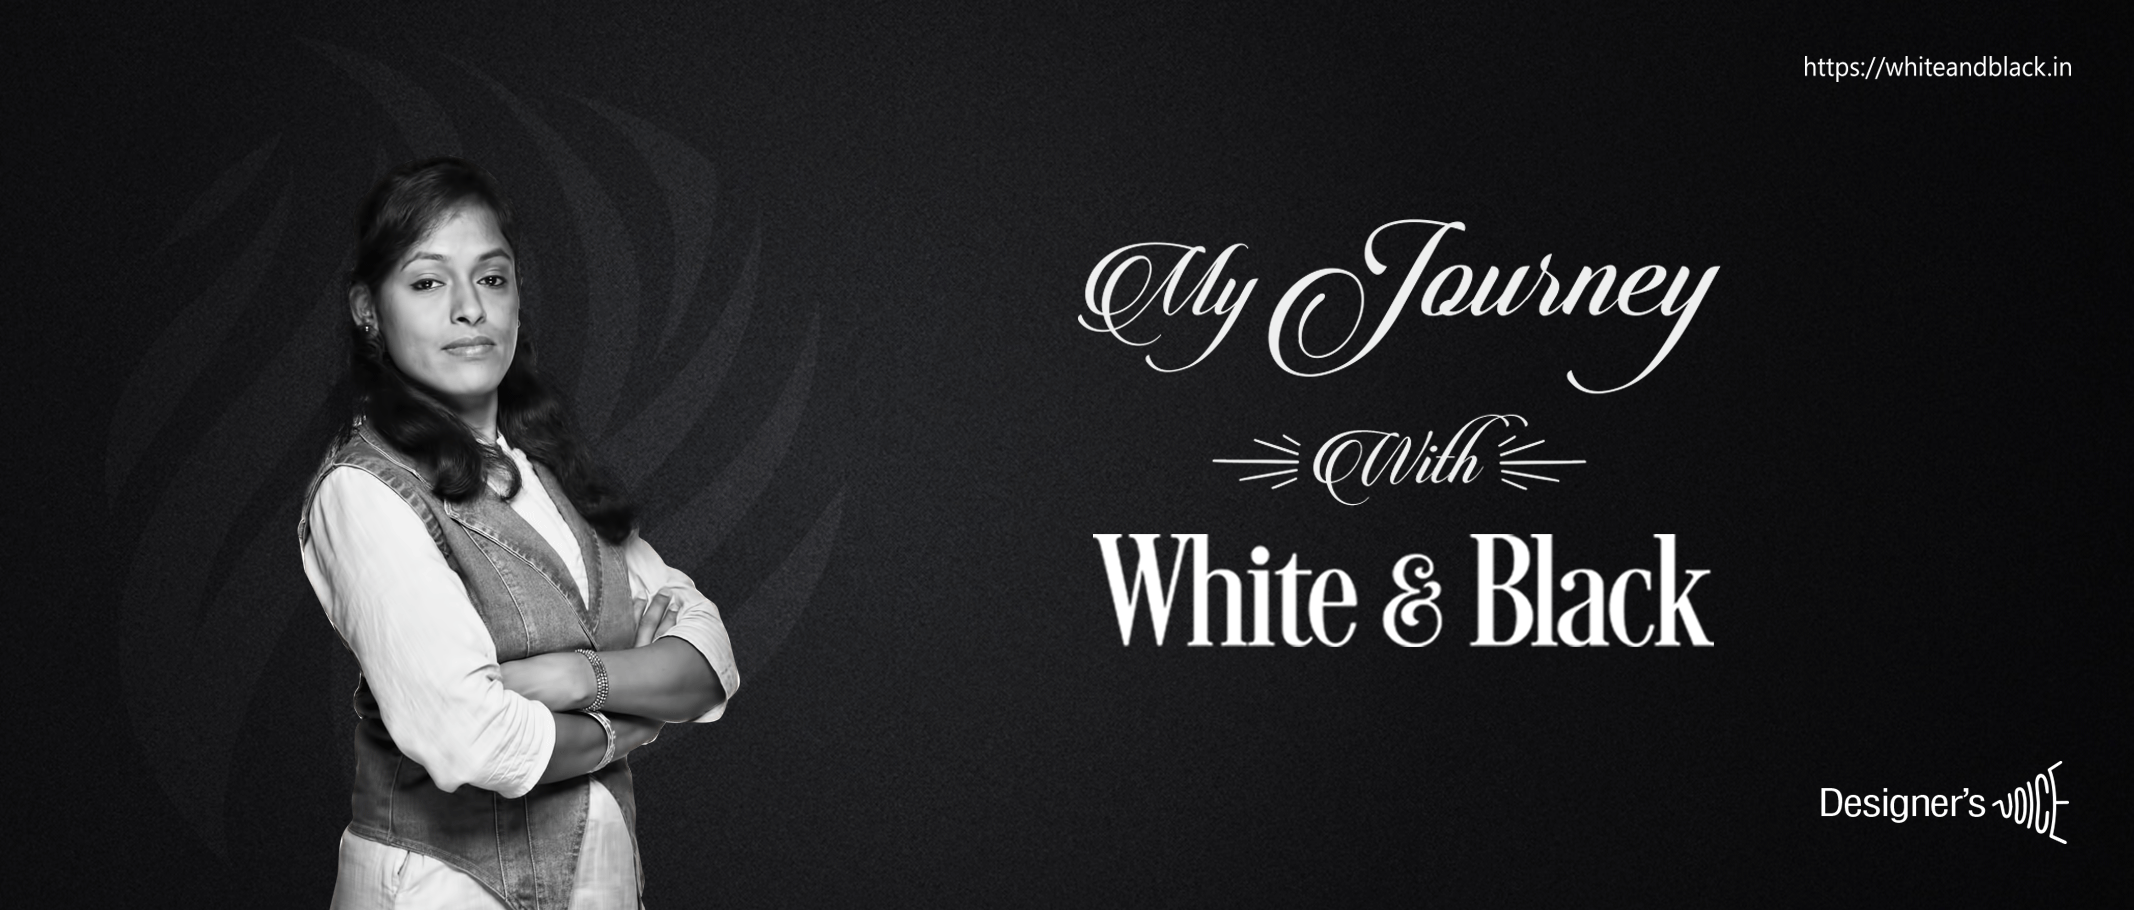 employee sharing experience about her journey with white and black